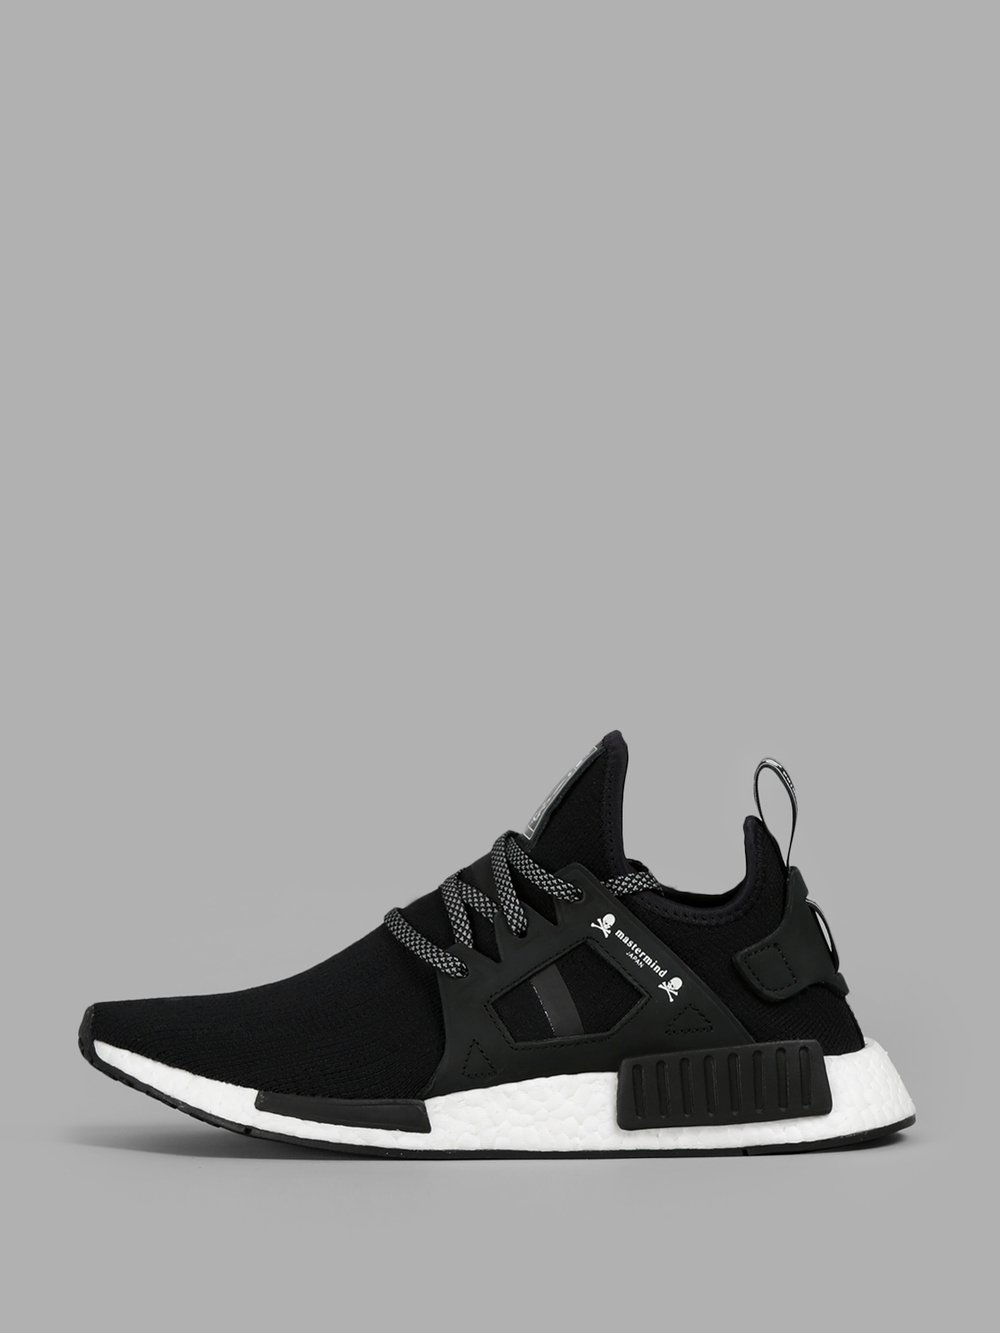 f6785f27c6ee8 Mastermind World - Sneakers - Antonioli.eu